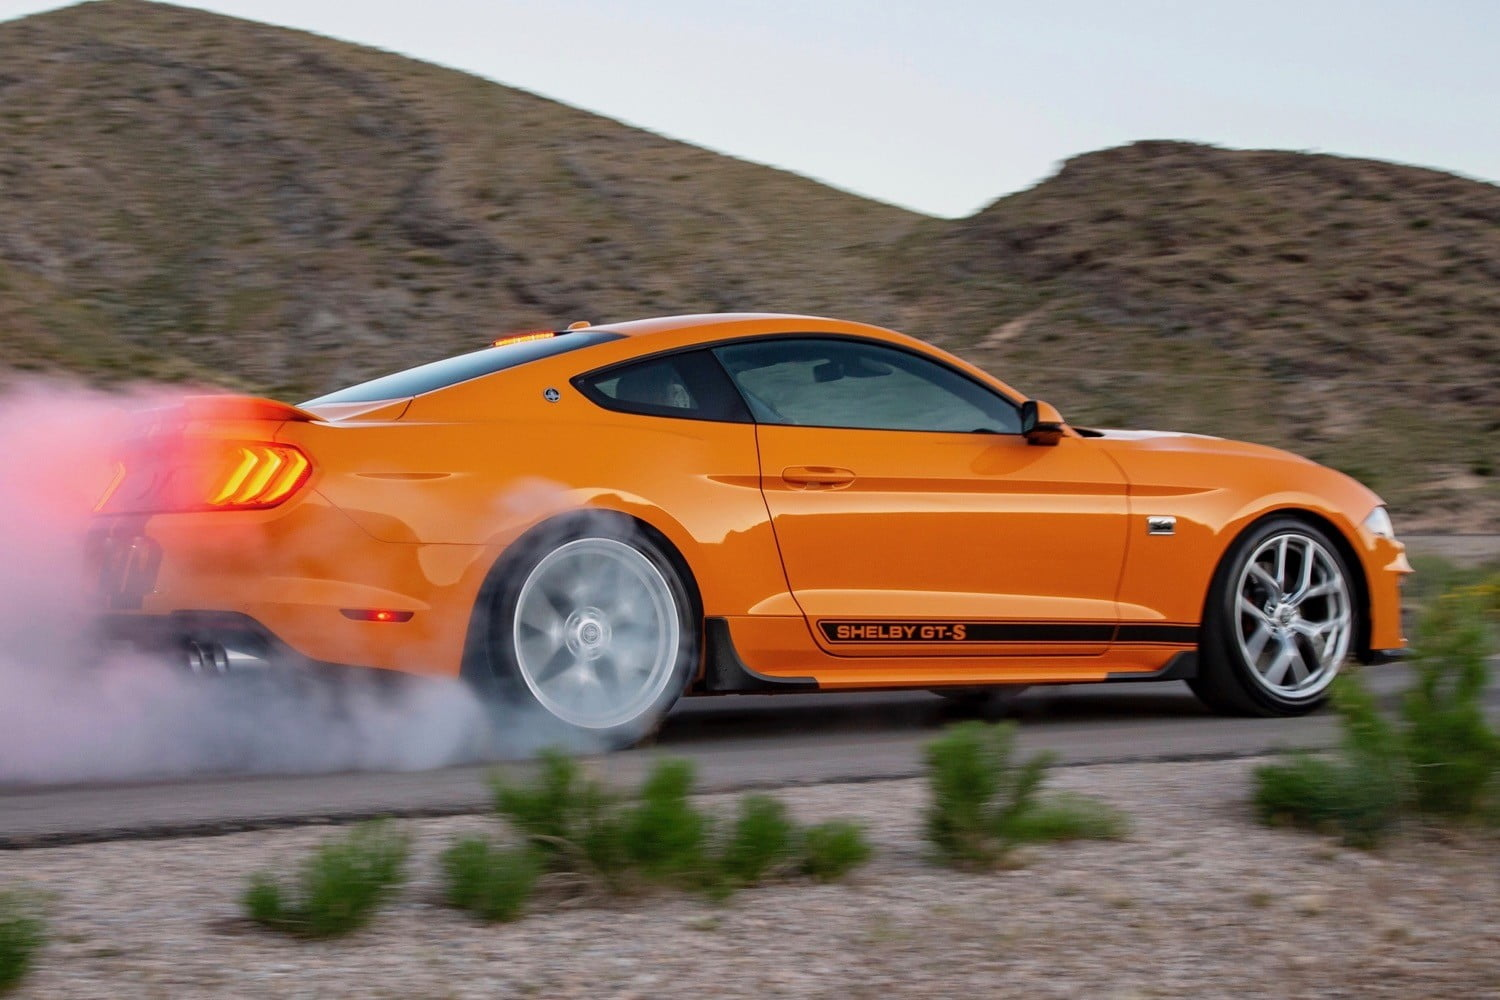 2019 Shelby GT-S Mustang Sixt rental car